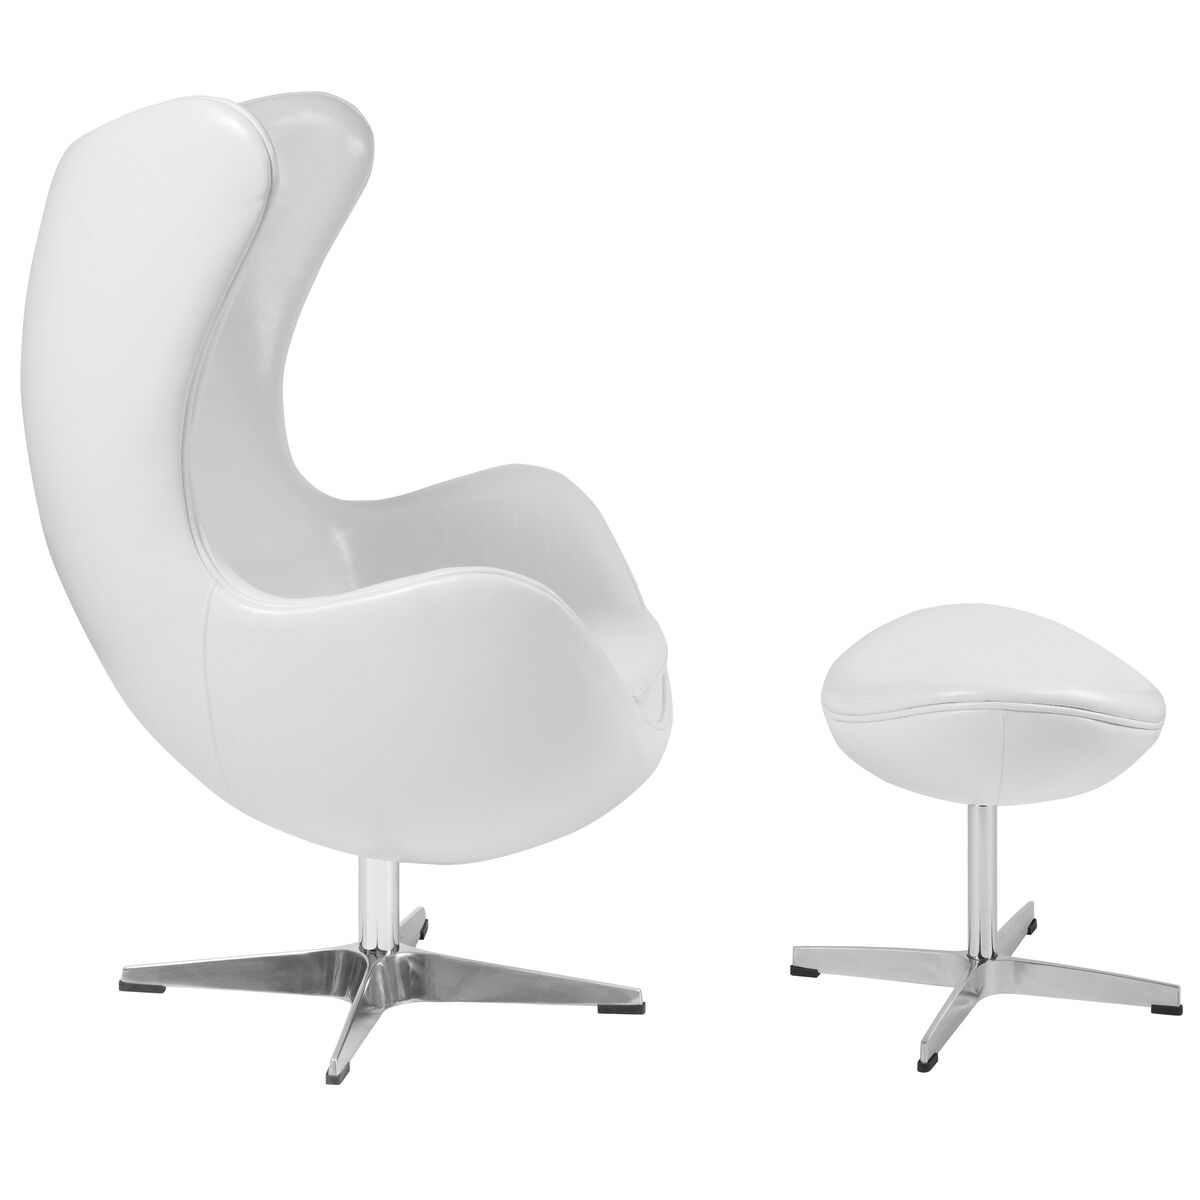 Our Melrose White Leather Egg Chair With Tilt Lock Mechanism And Ottoman Is On